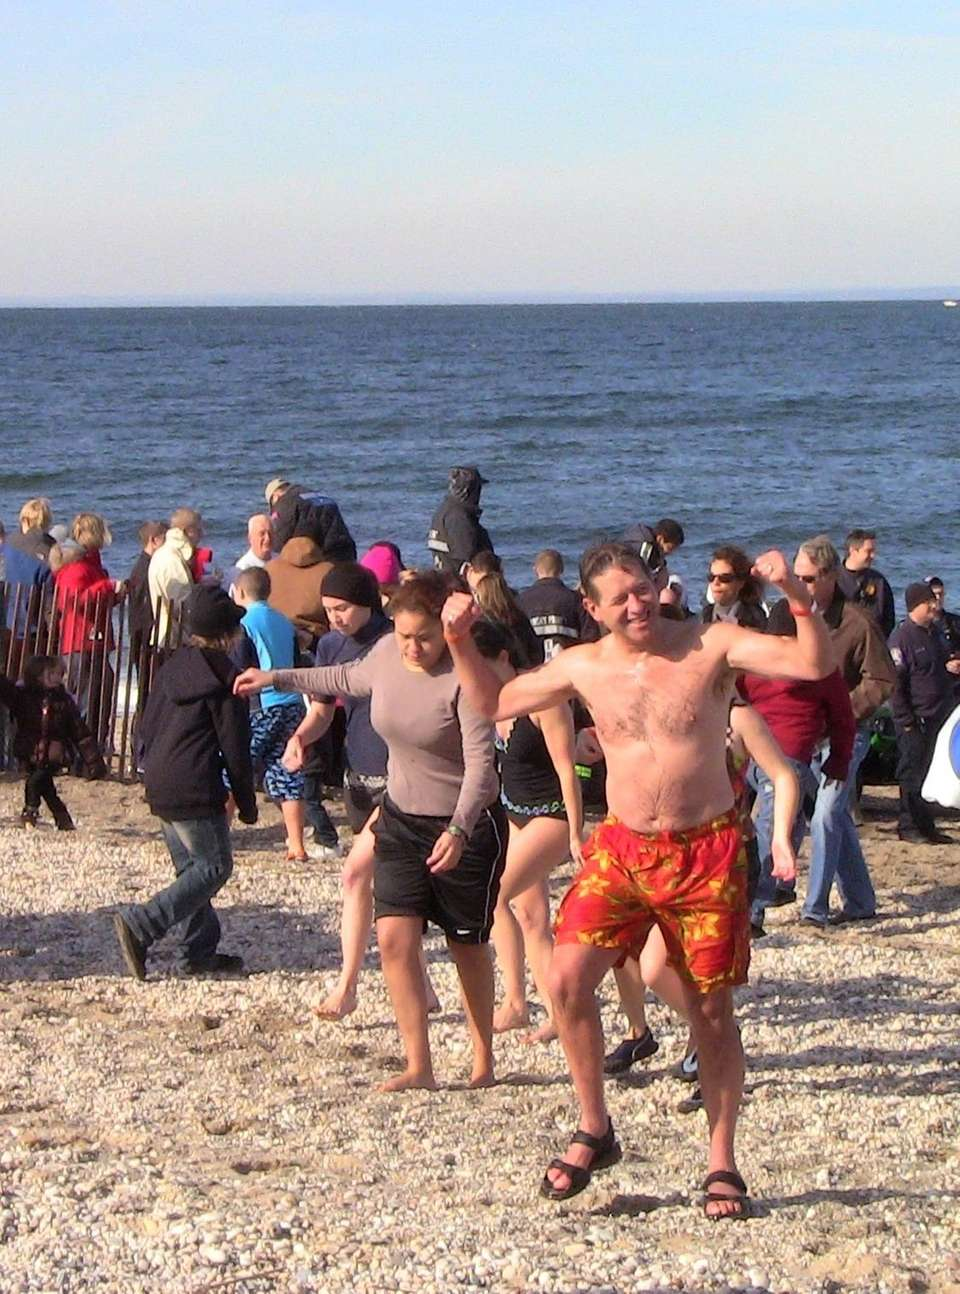 Plungers head out of the water after jumping